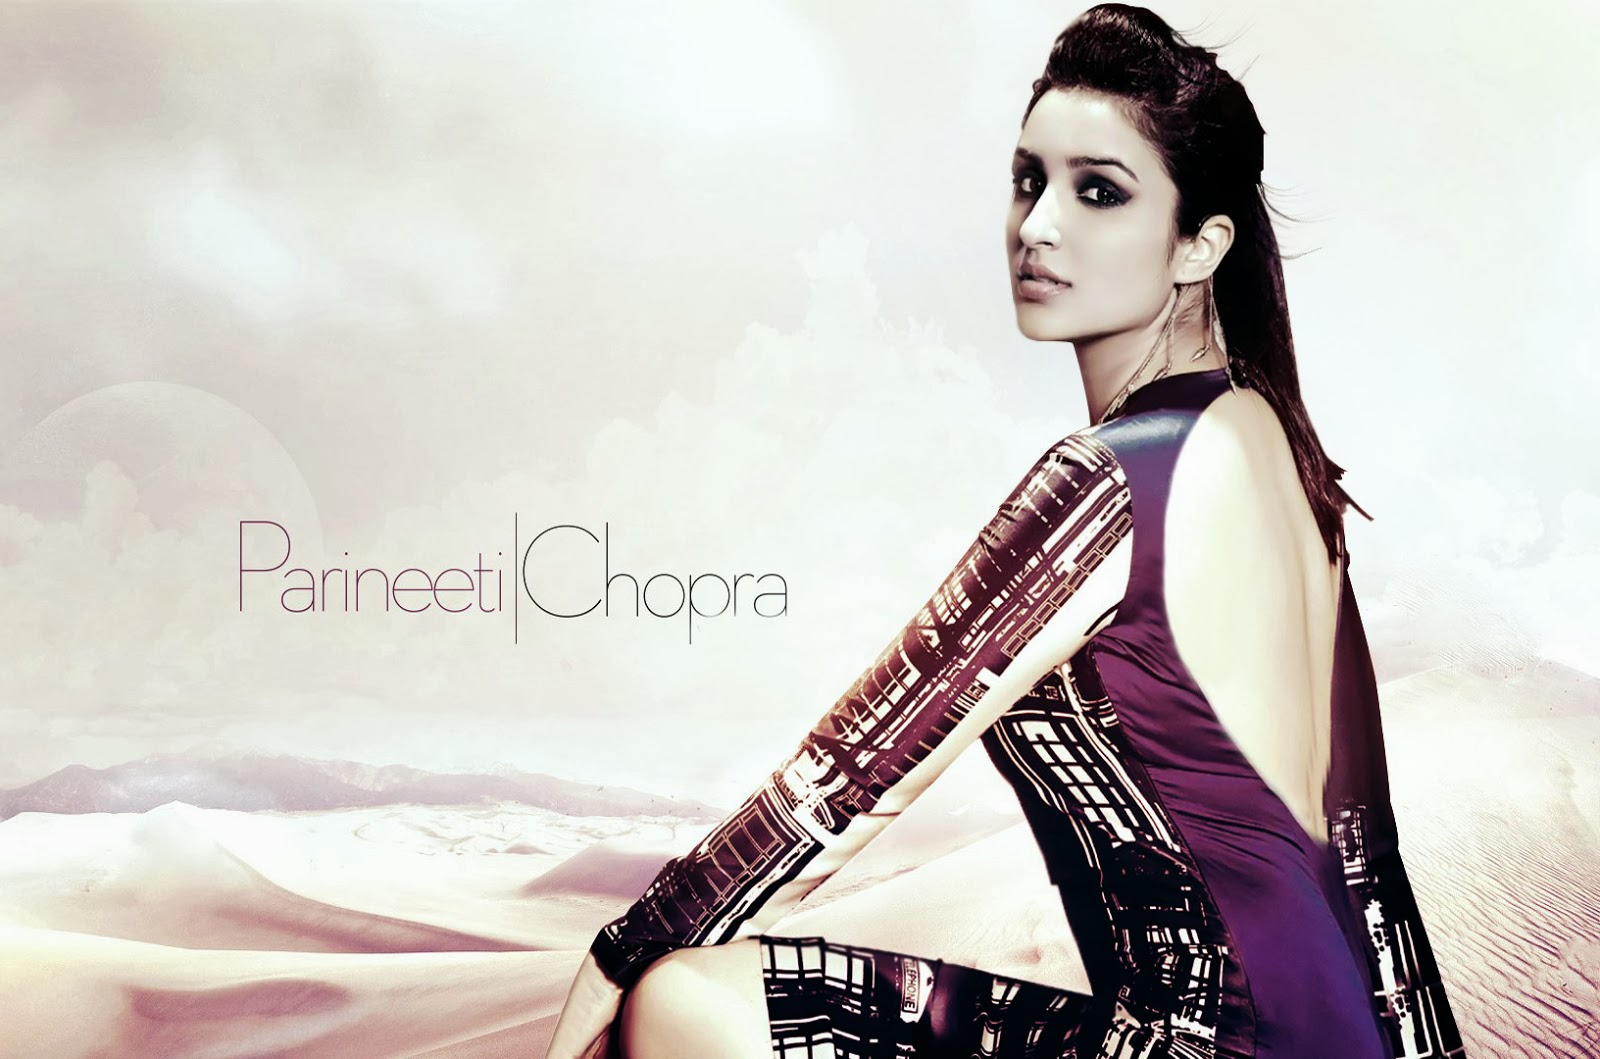 Parineeti chopra new hd wallpaper 2013 14 world - Parineeti chopra wallpapers for iphone ...